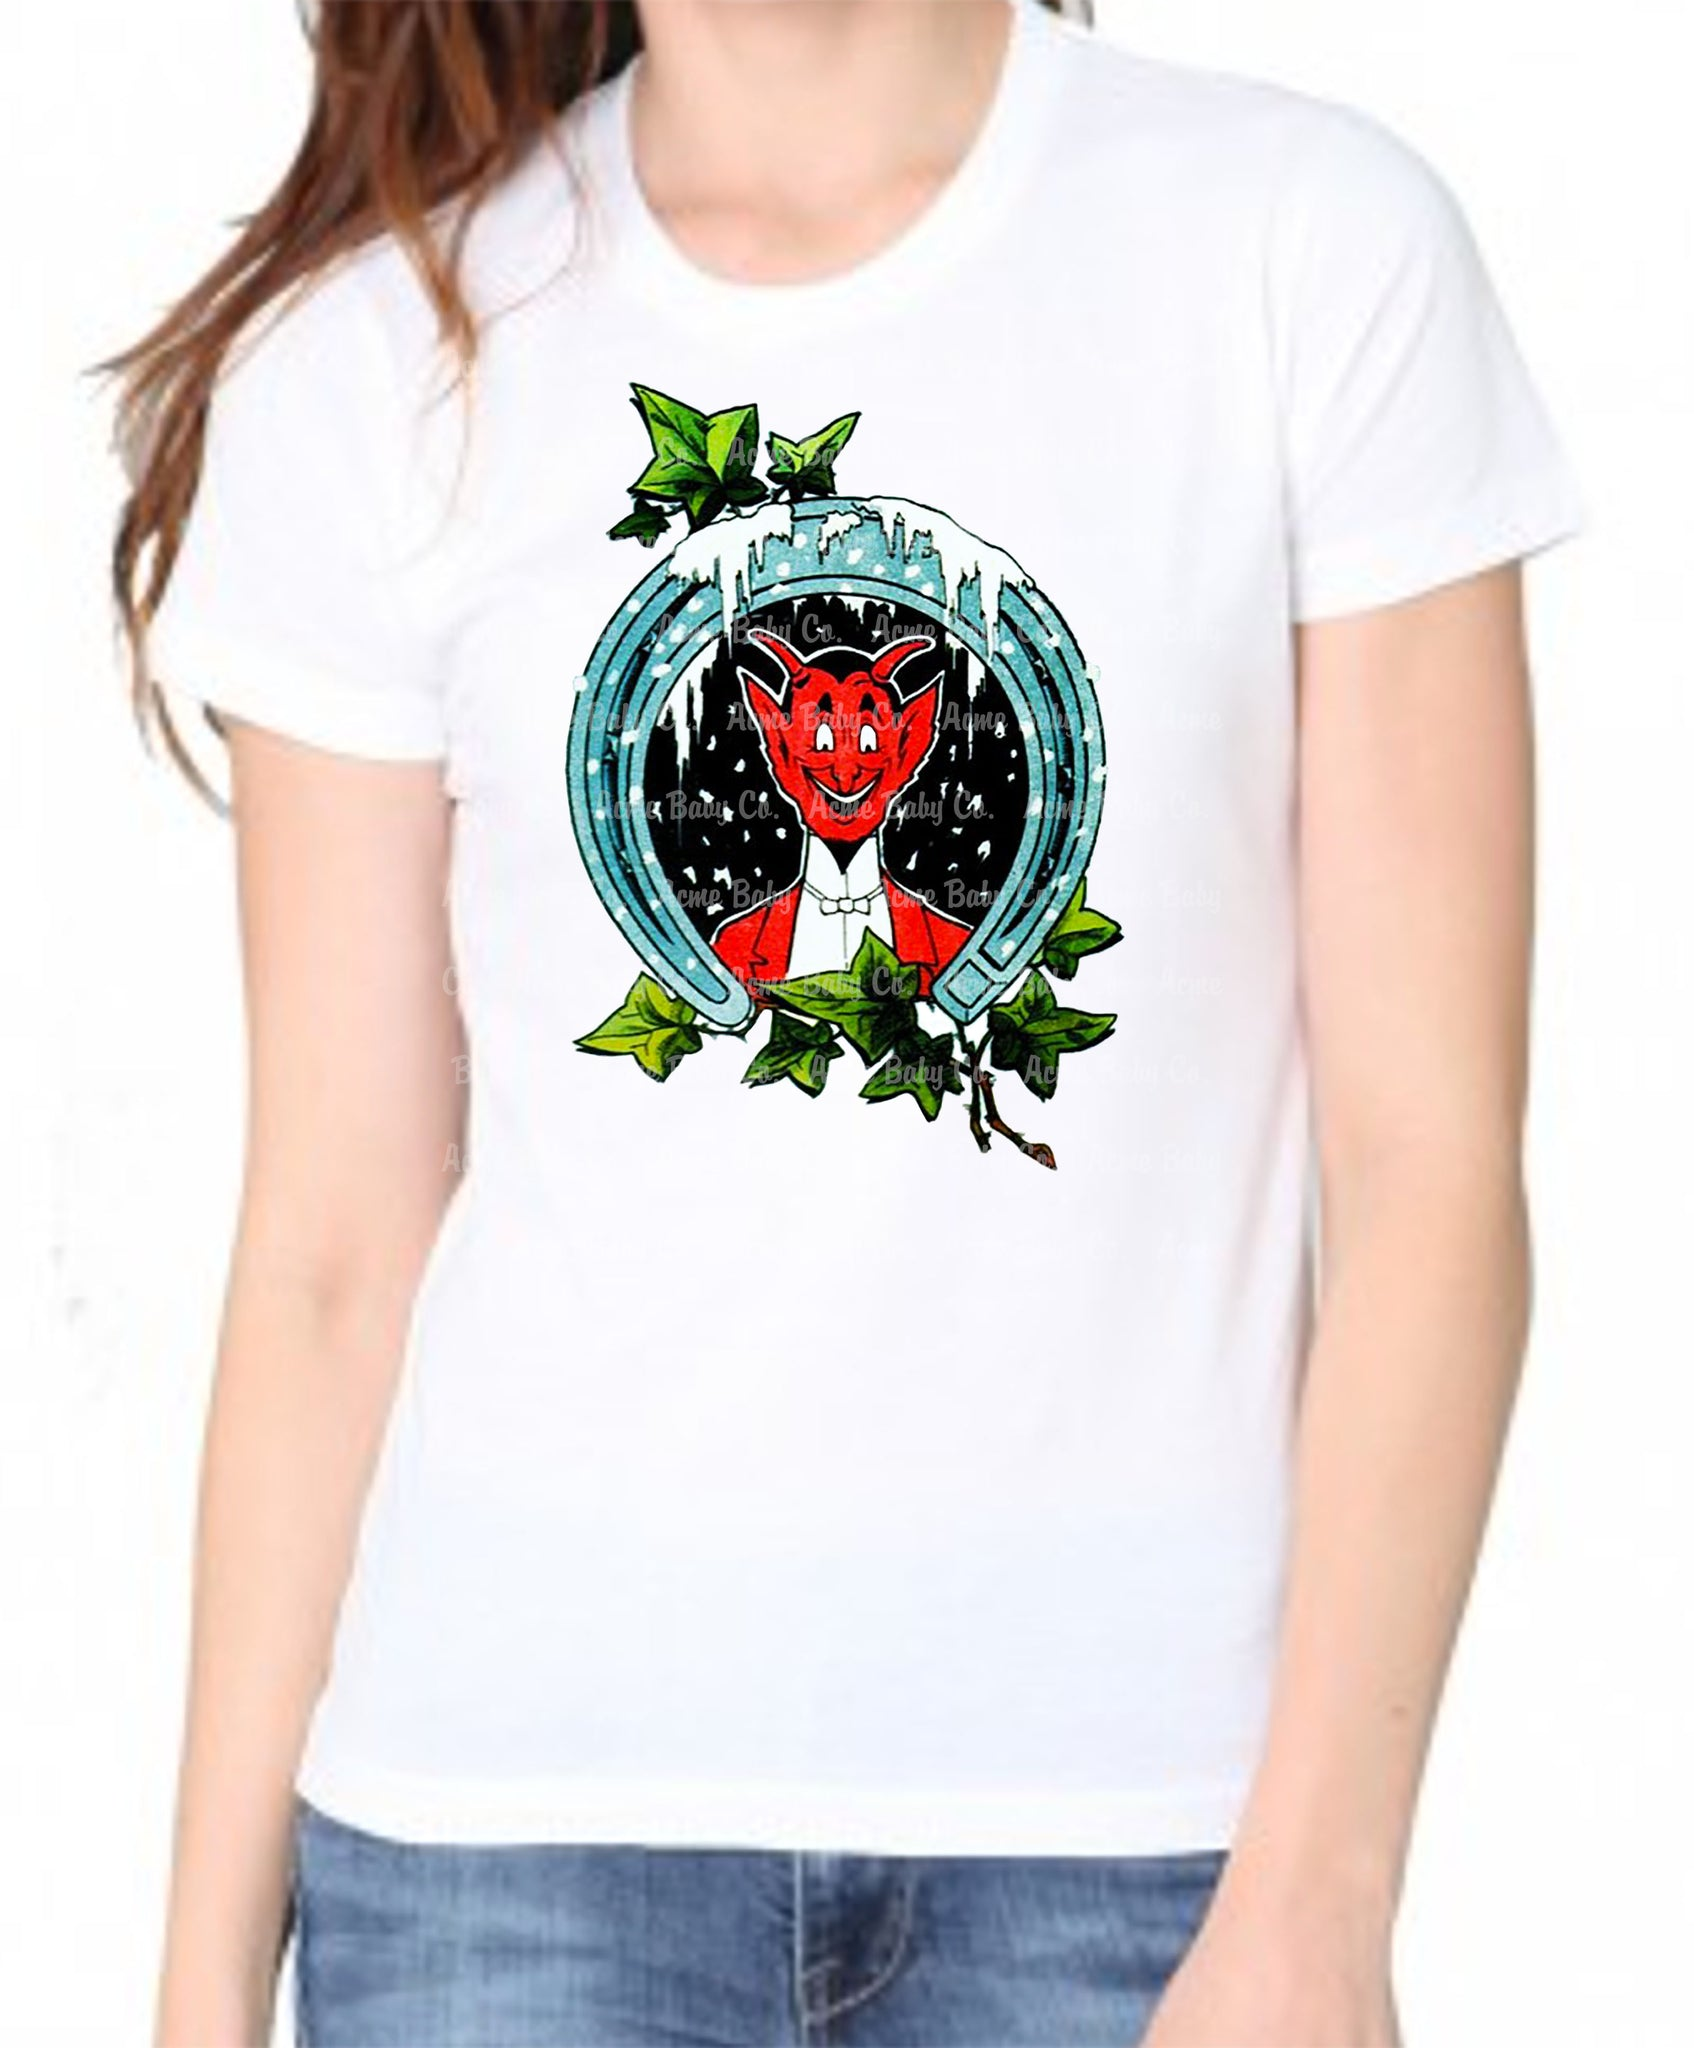 Happy Krampus Women's Organic Shirt